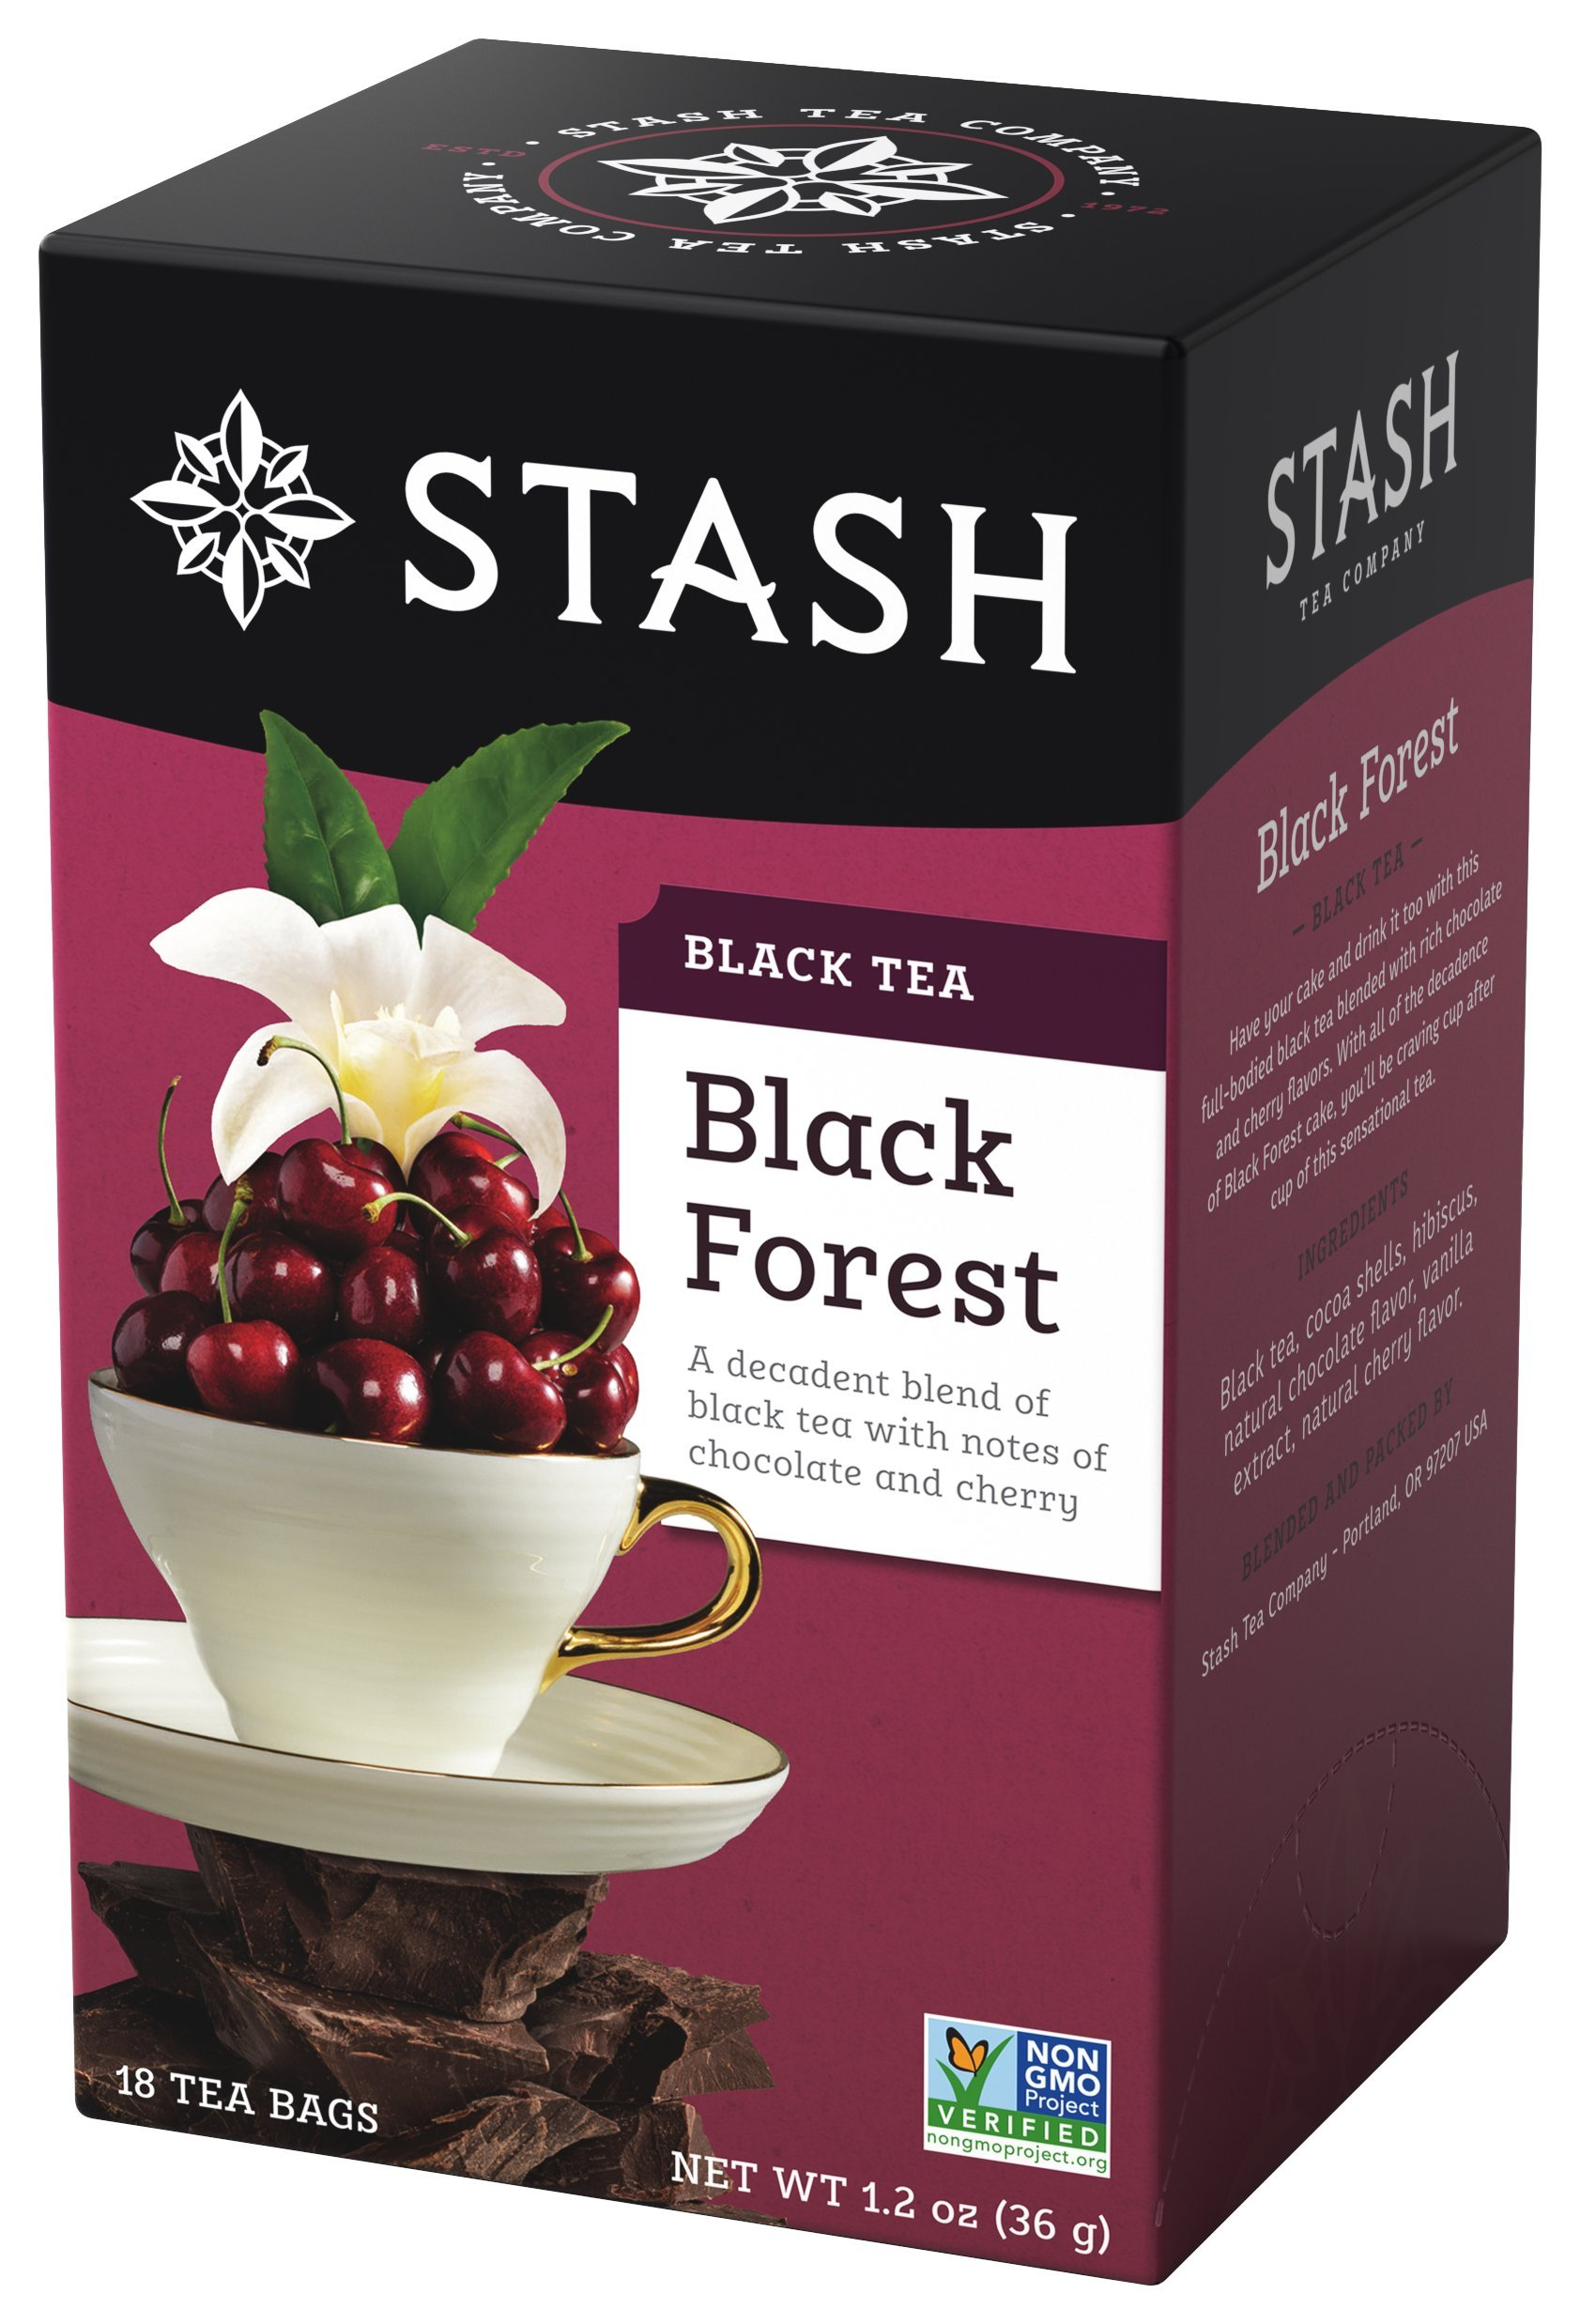 Stash Tea Black Forest Black Tea 18 Count Tea Bags in Foil (Pack of 6) Individual Black Tea Bags for Use in Teapots Mugs or Cups, Brew Hot Tea or Iced Tea, Fair Trade Certified